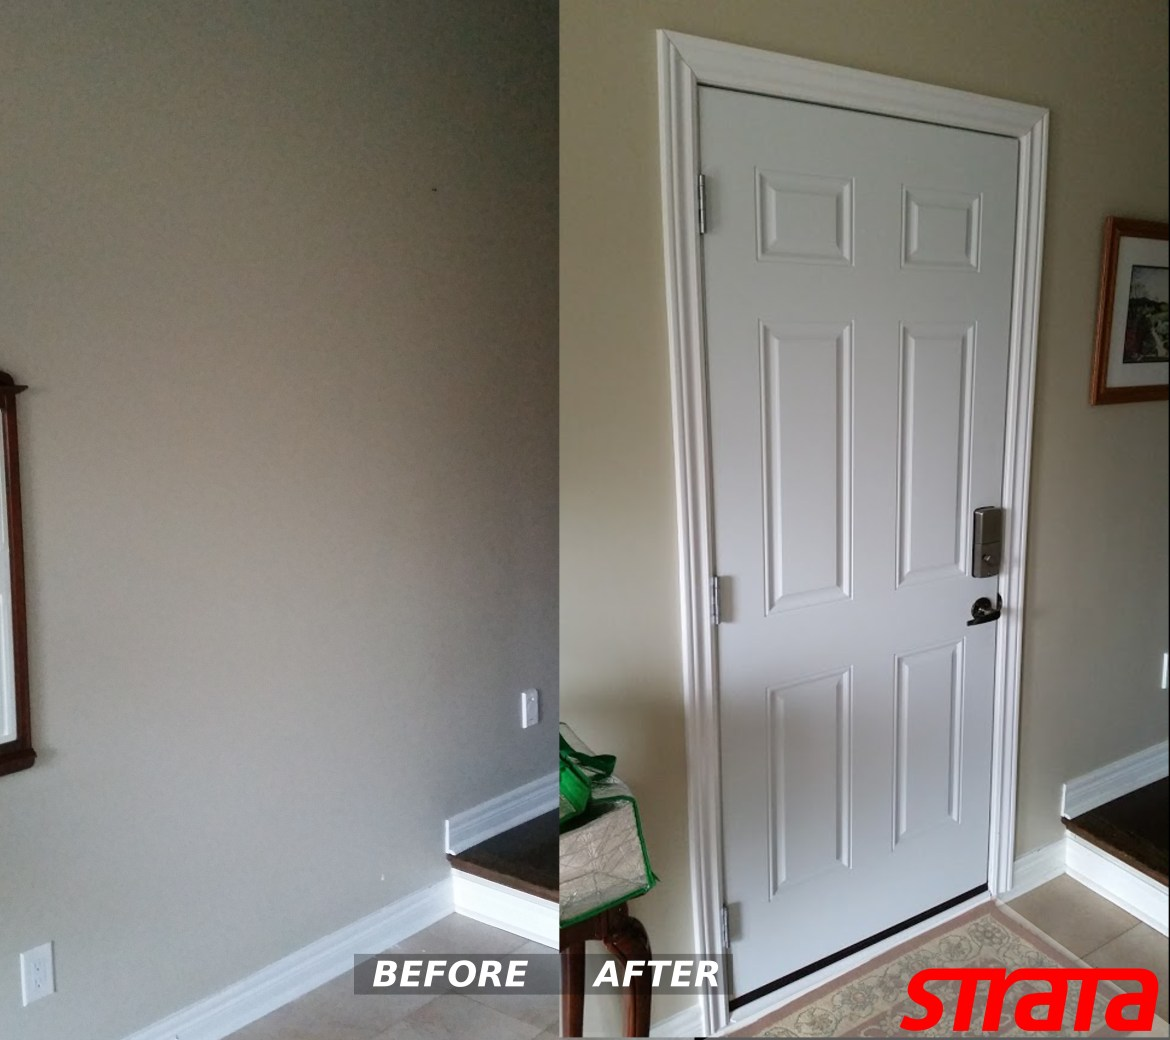 door cutout, cutout brick, install door, door cutout in brick, door into garage, add a door to garage, cut in a door into the garage, Install Door from house into garage in Vaughan, Toronto, Vaughan, GTA, Richmond Hill, Aurora, Newmarket